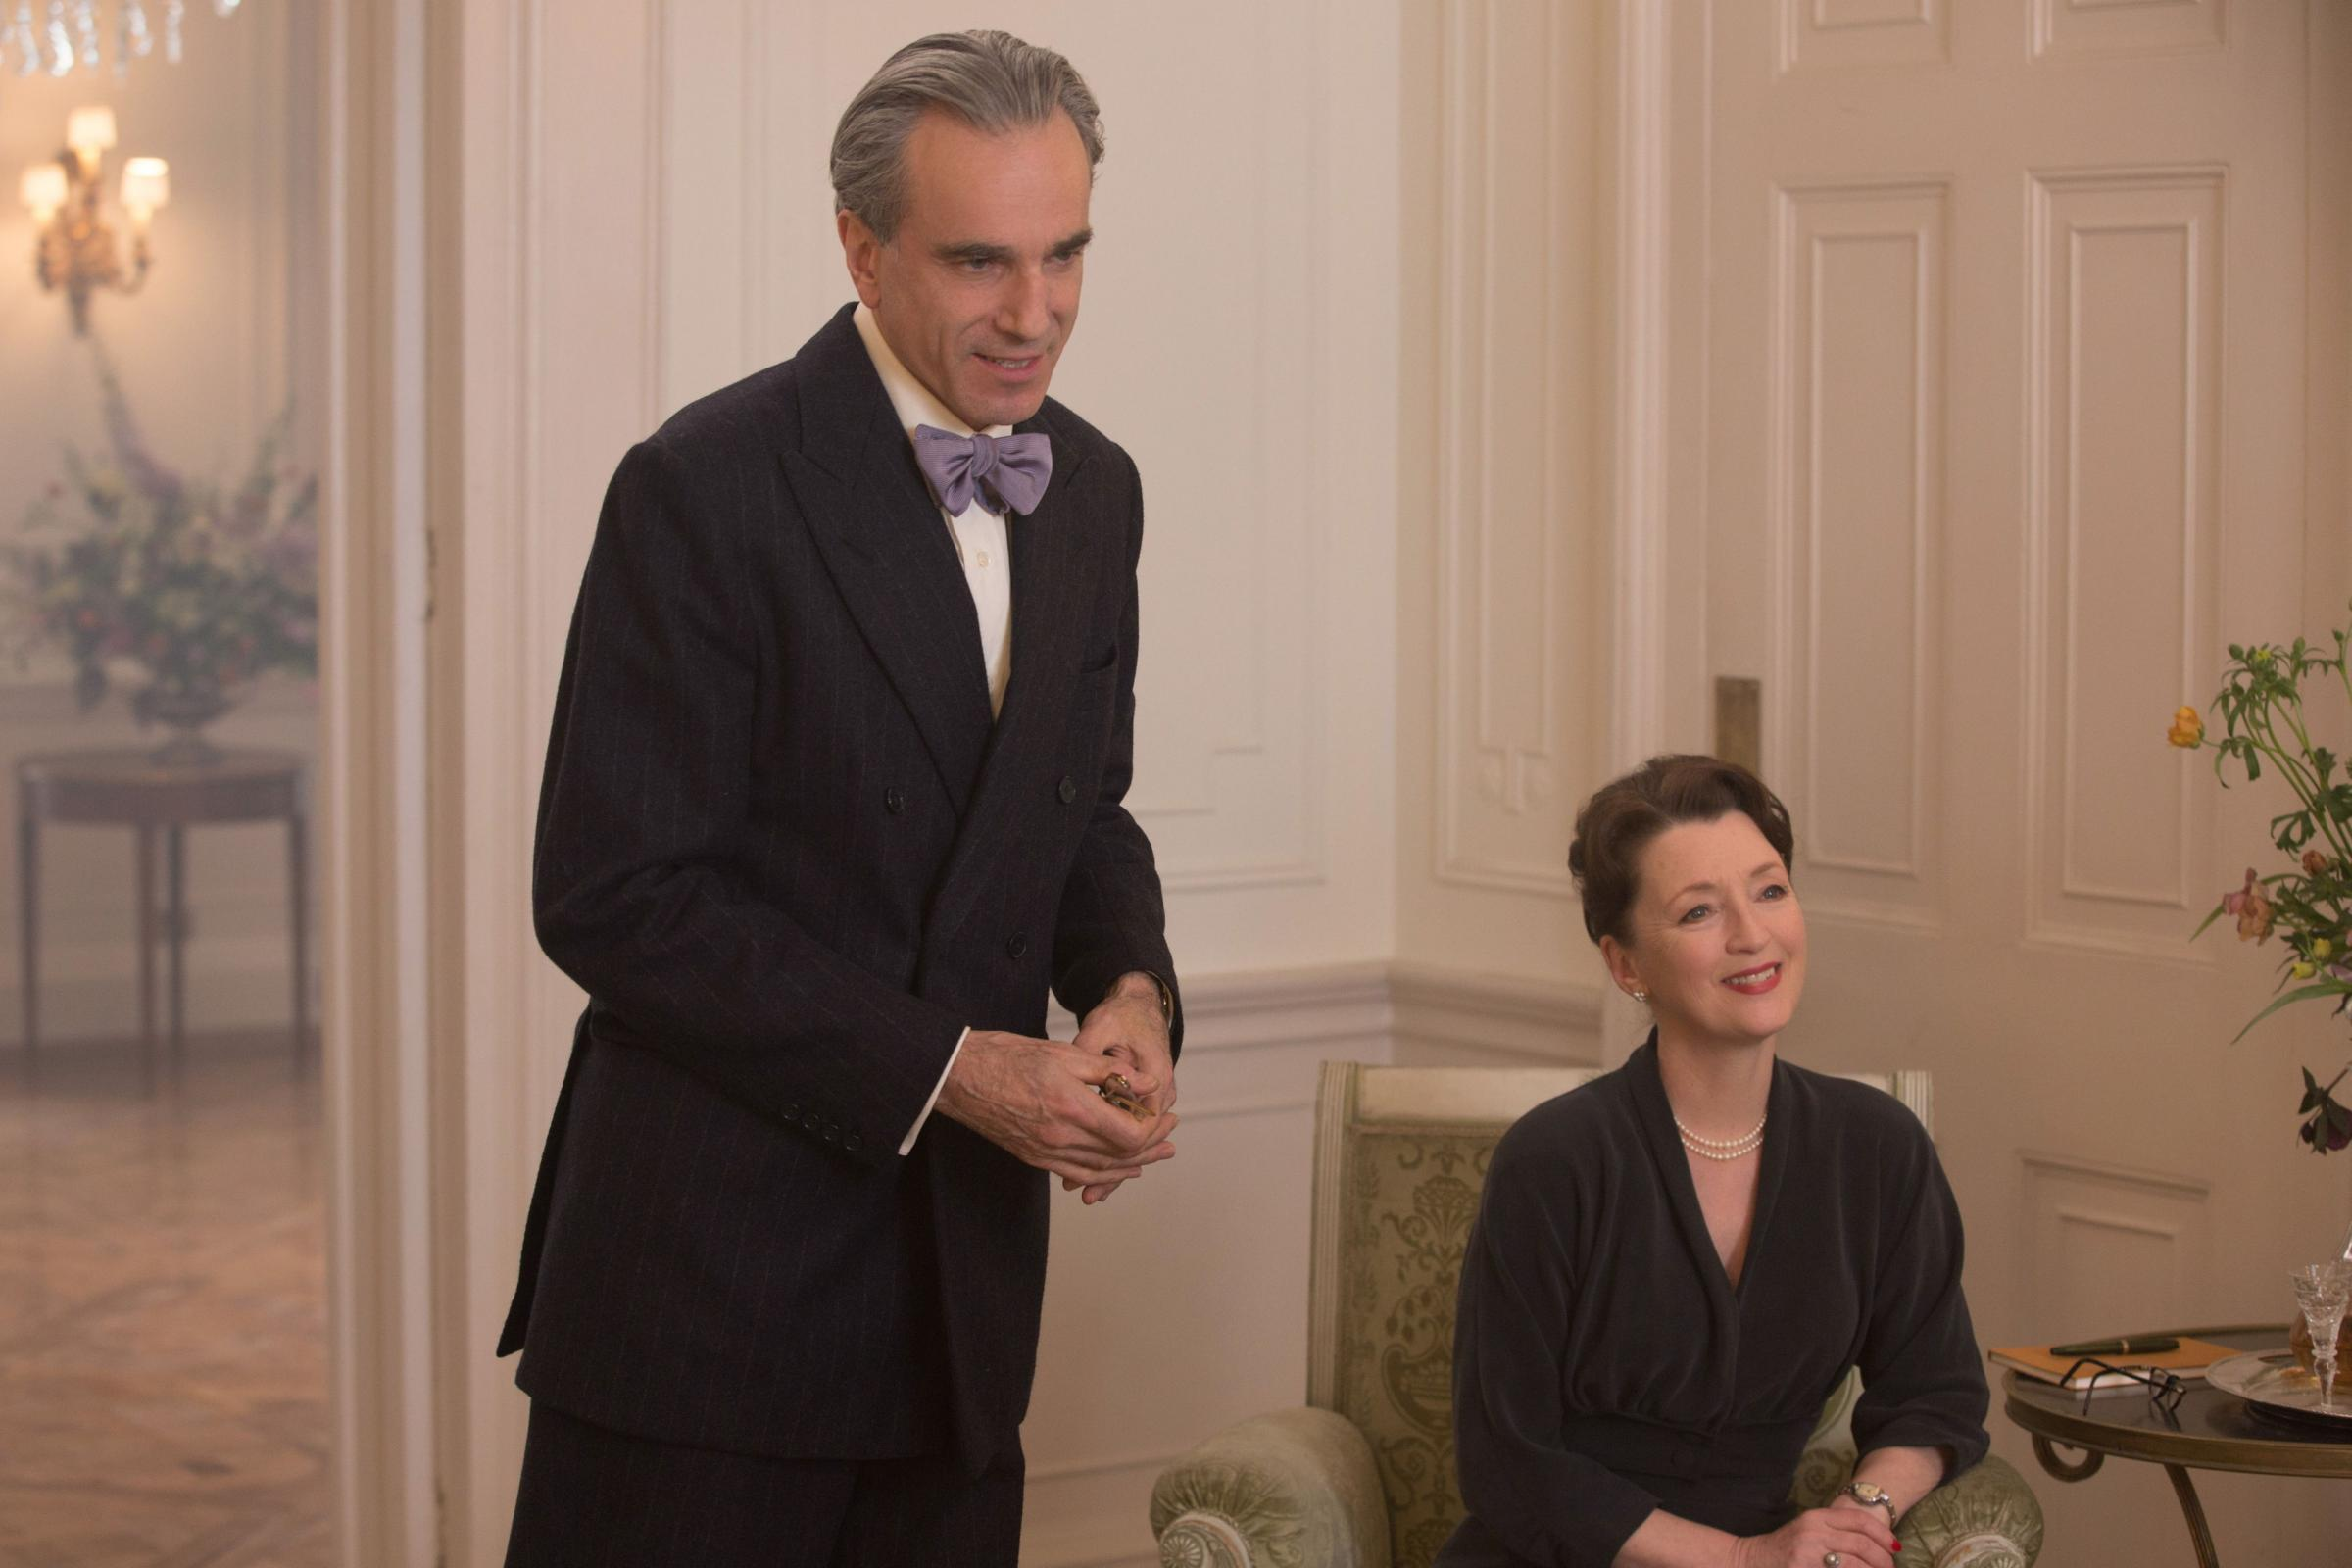 Phantom Thread. Pictured: Daniel Day-Lewis as Reynolds Woodcock and Lesley Manville as Cyril